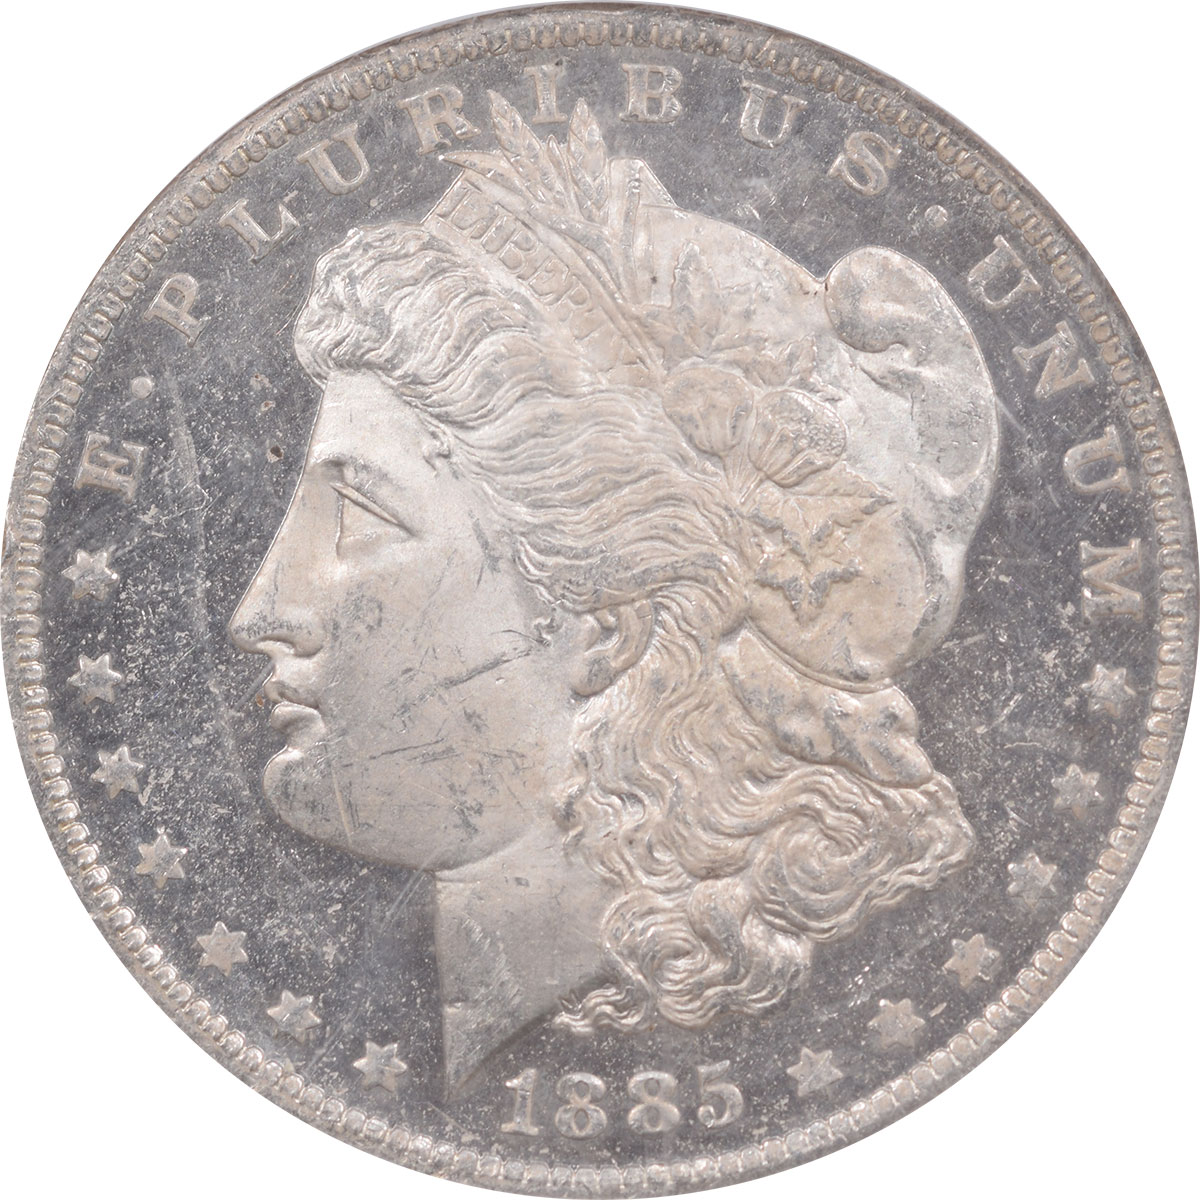 Morgan Dollars 1885-O MORGAN DOLLAR NGC MS-63 DPL, PREMIUM QUALITY